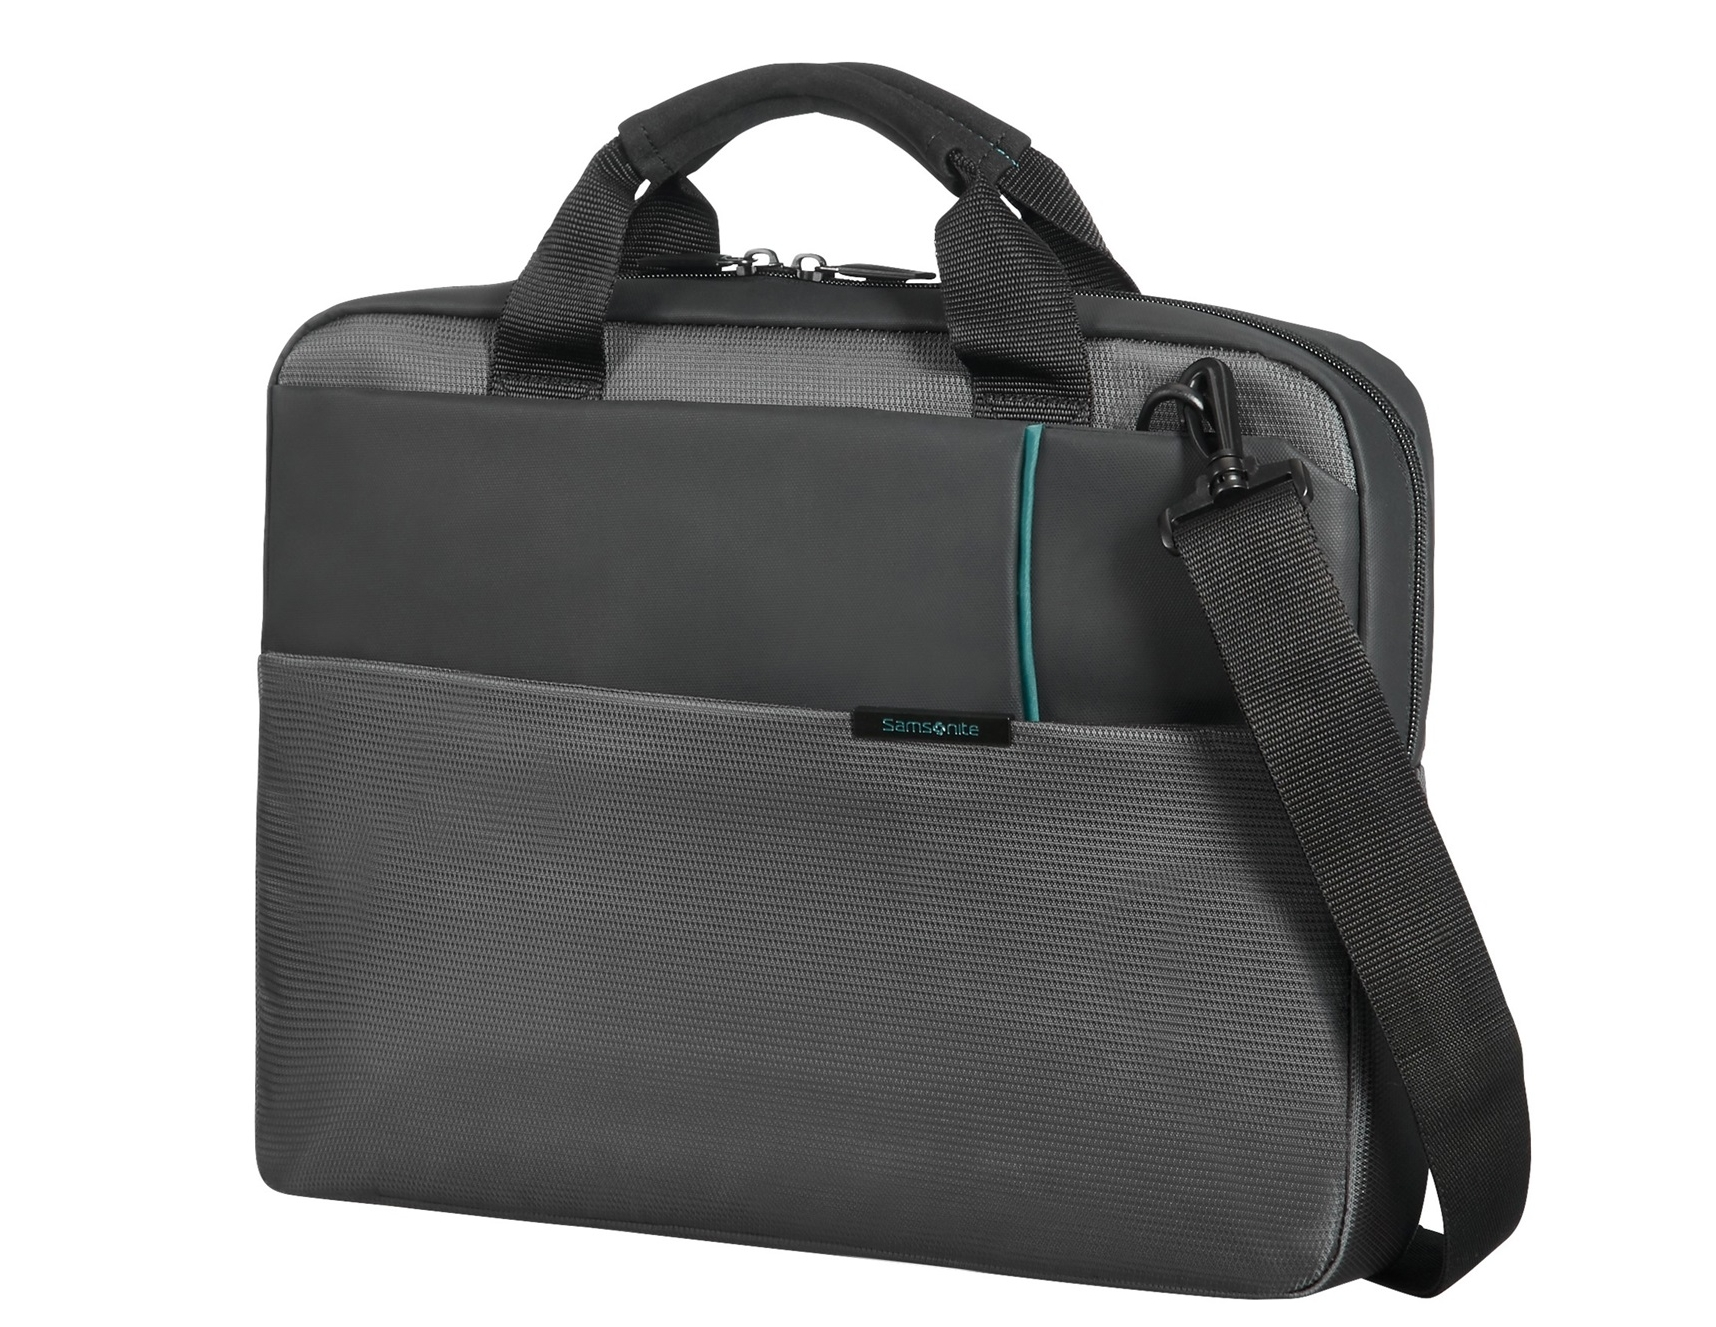 SAMSONITE - BORSE NOTEBOOK - 5414847698163